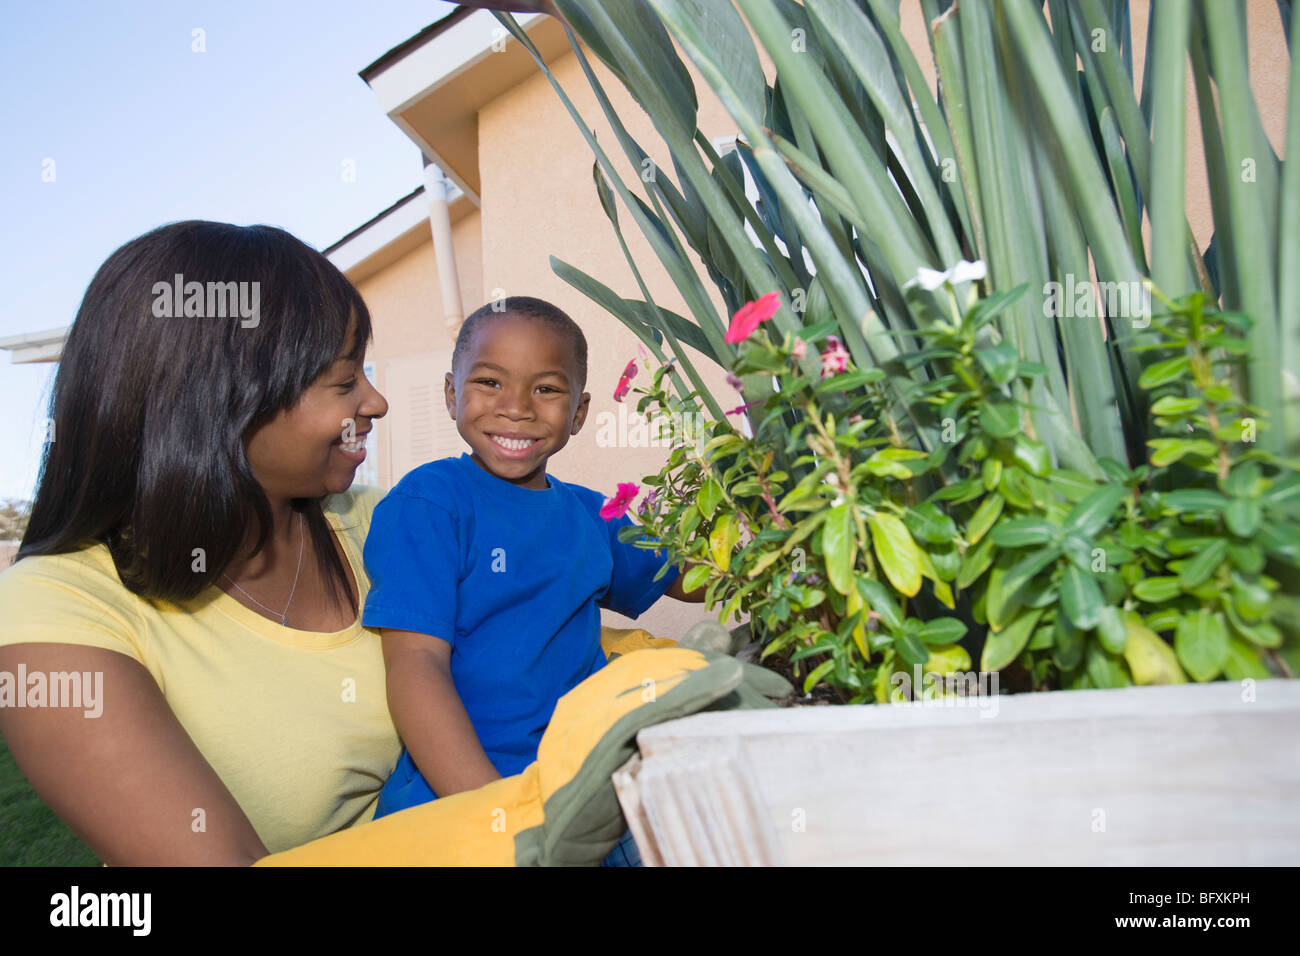 Woman and son tending plants - Stock Image